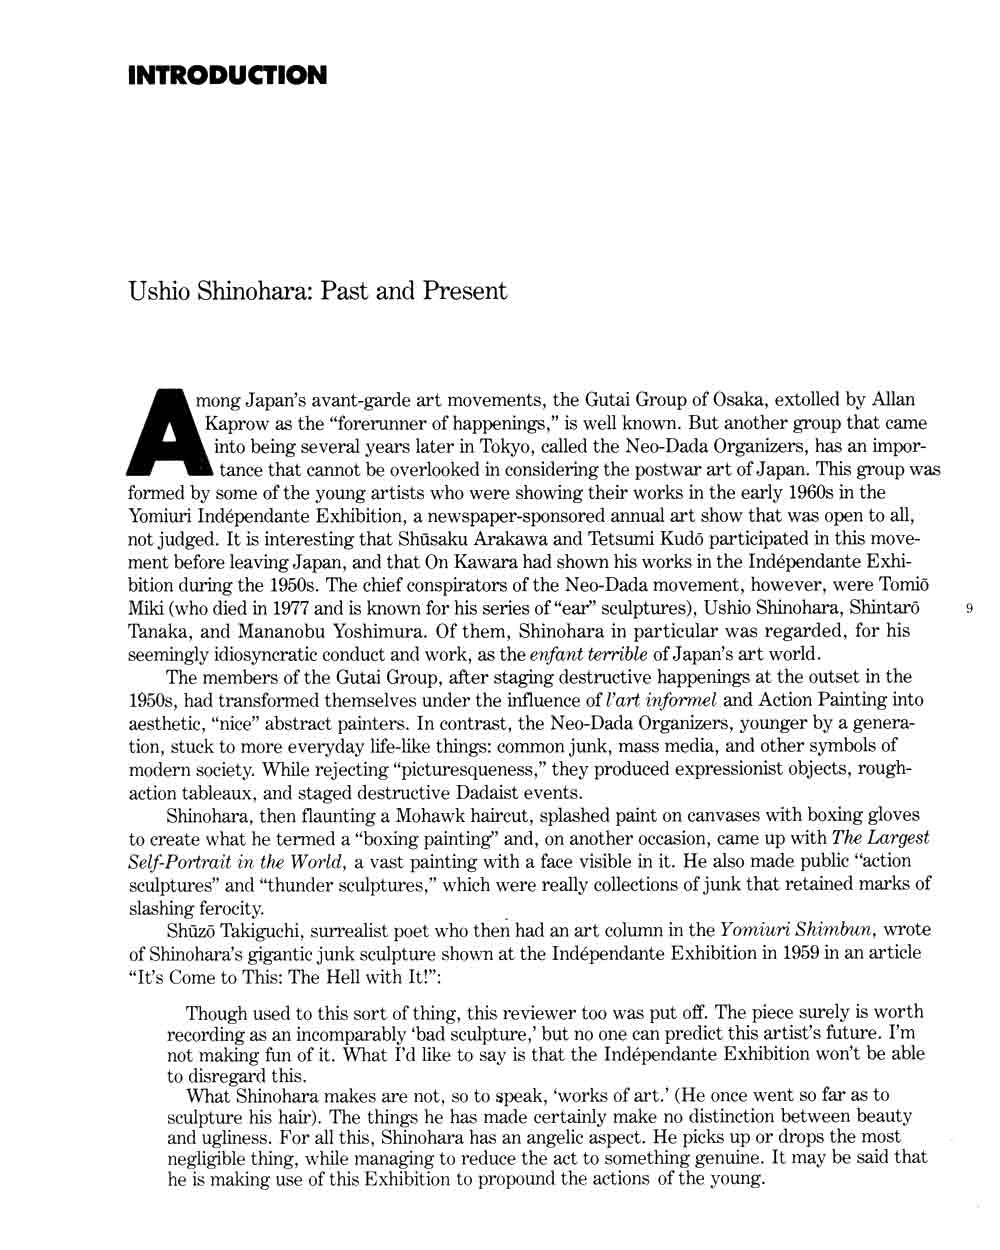 american history research paper thesis An example of an a paper - history 451  cohen, charles l lectures for history 451: early american religious history fall 1999 frost, j william.